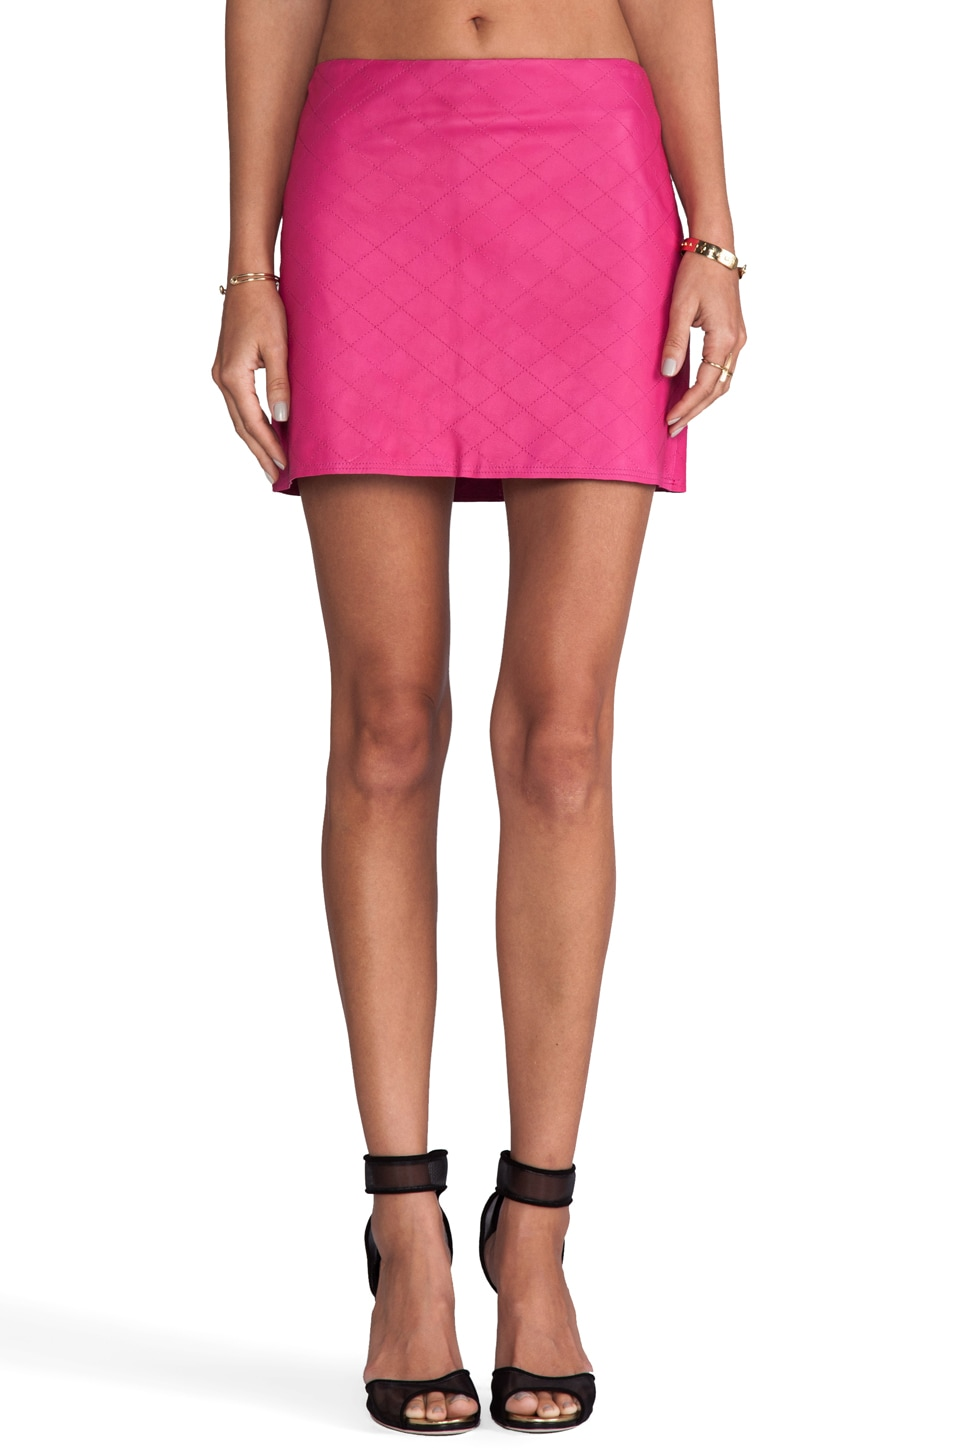 Alice + Olivia Brigitta Leather Mini Skirt in Fuchsia